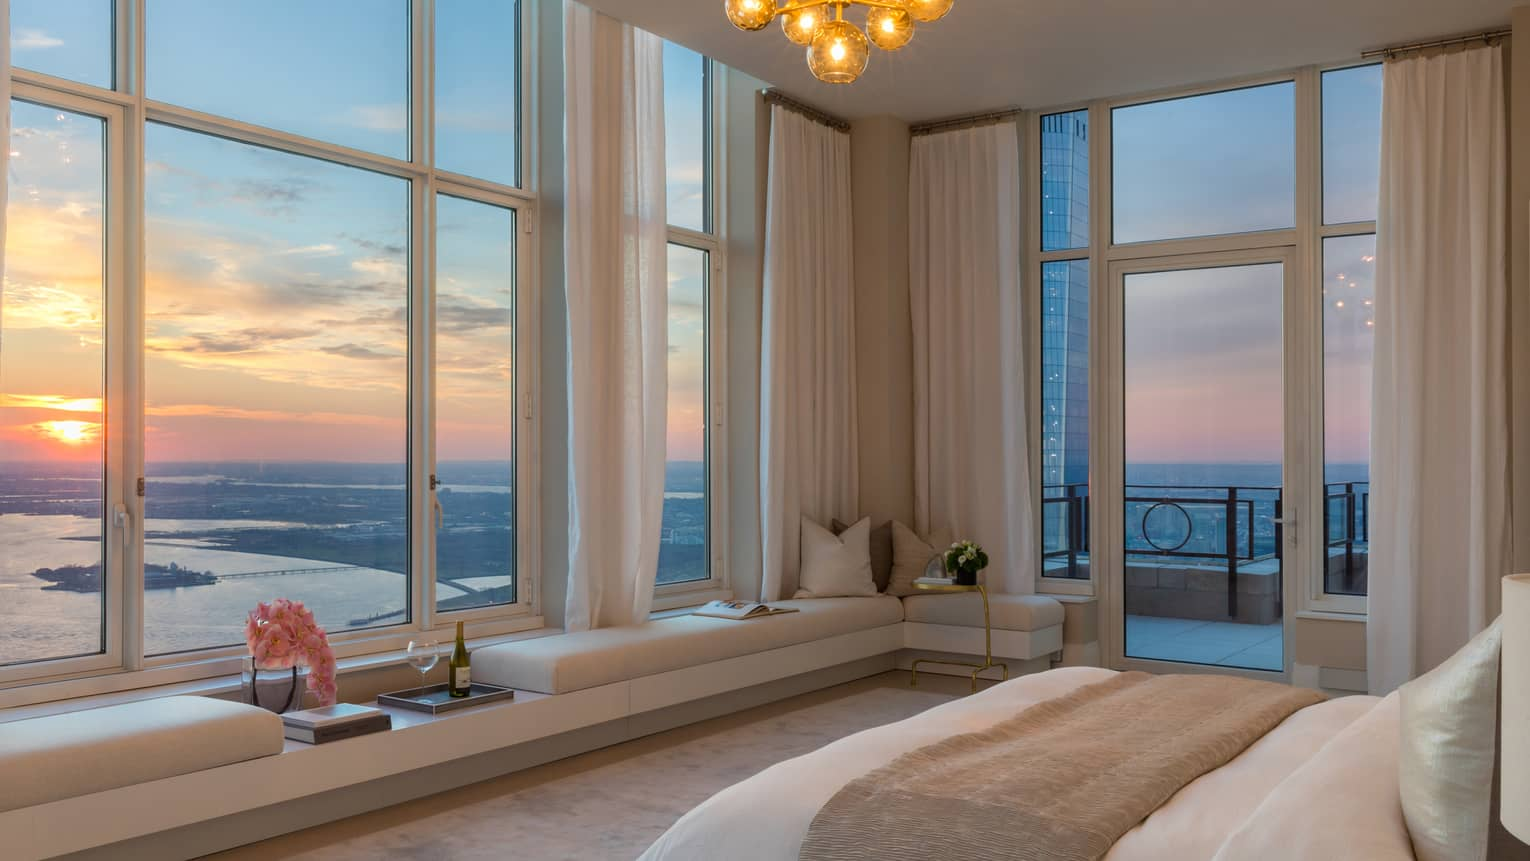 Bed with folded beige blanket across from corner picture windows, sunset views